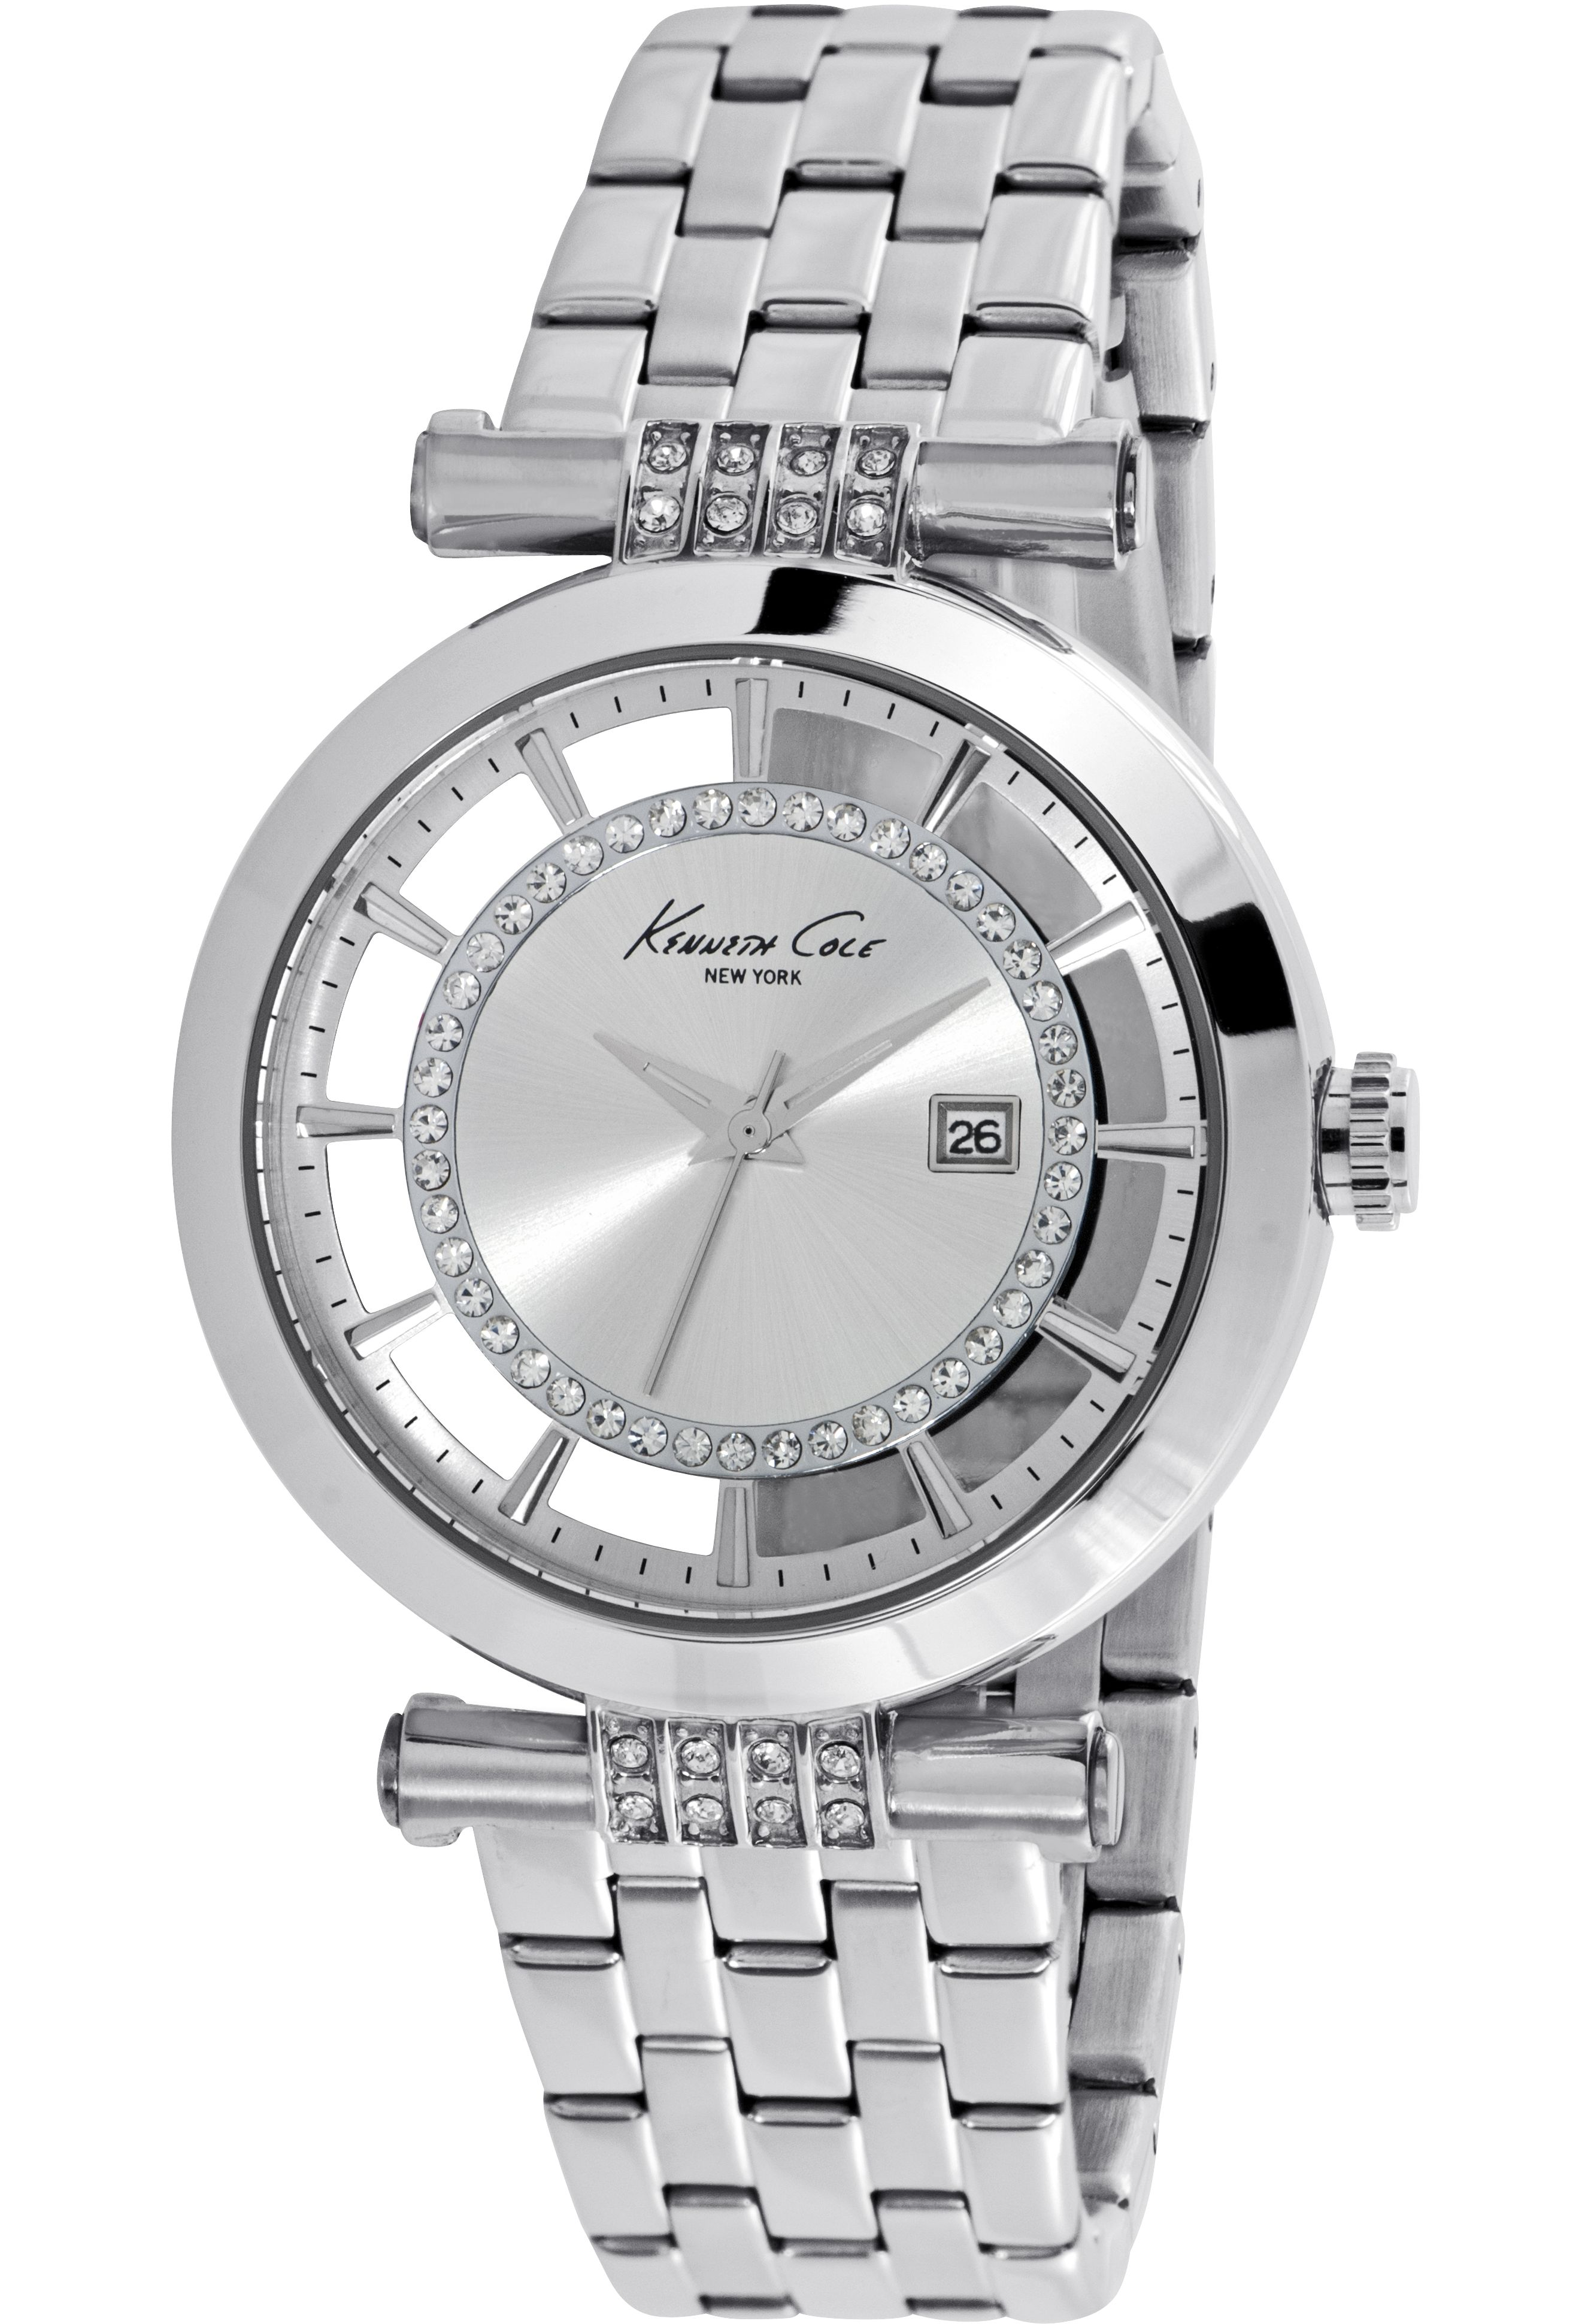 montre kenneth cole femme